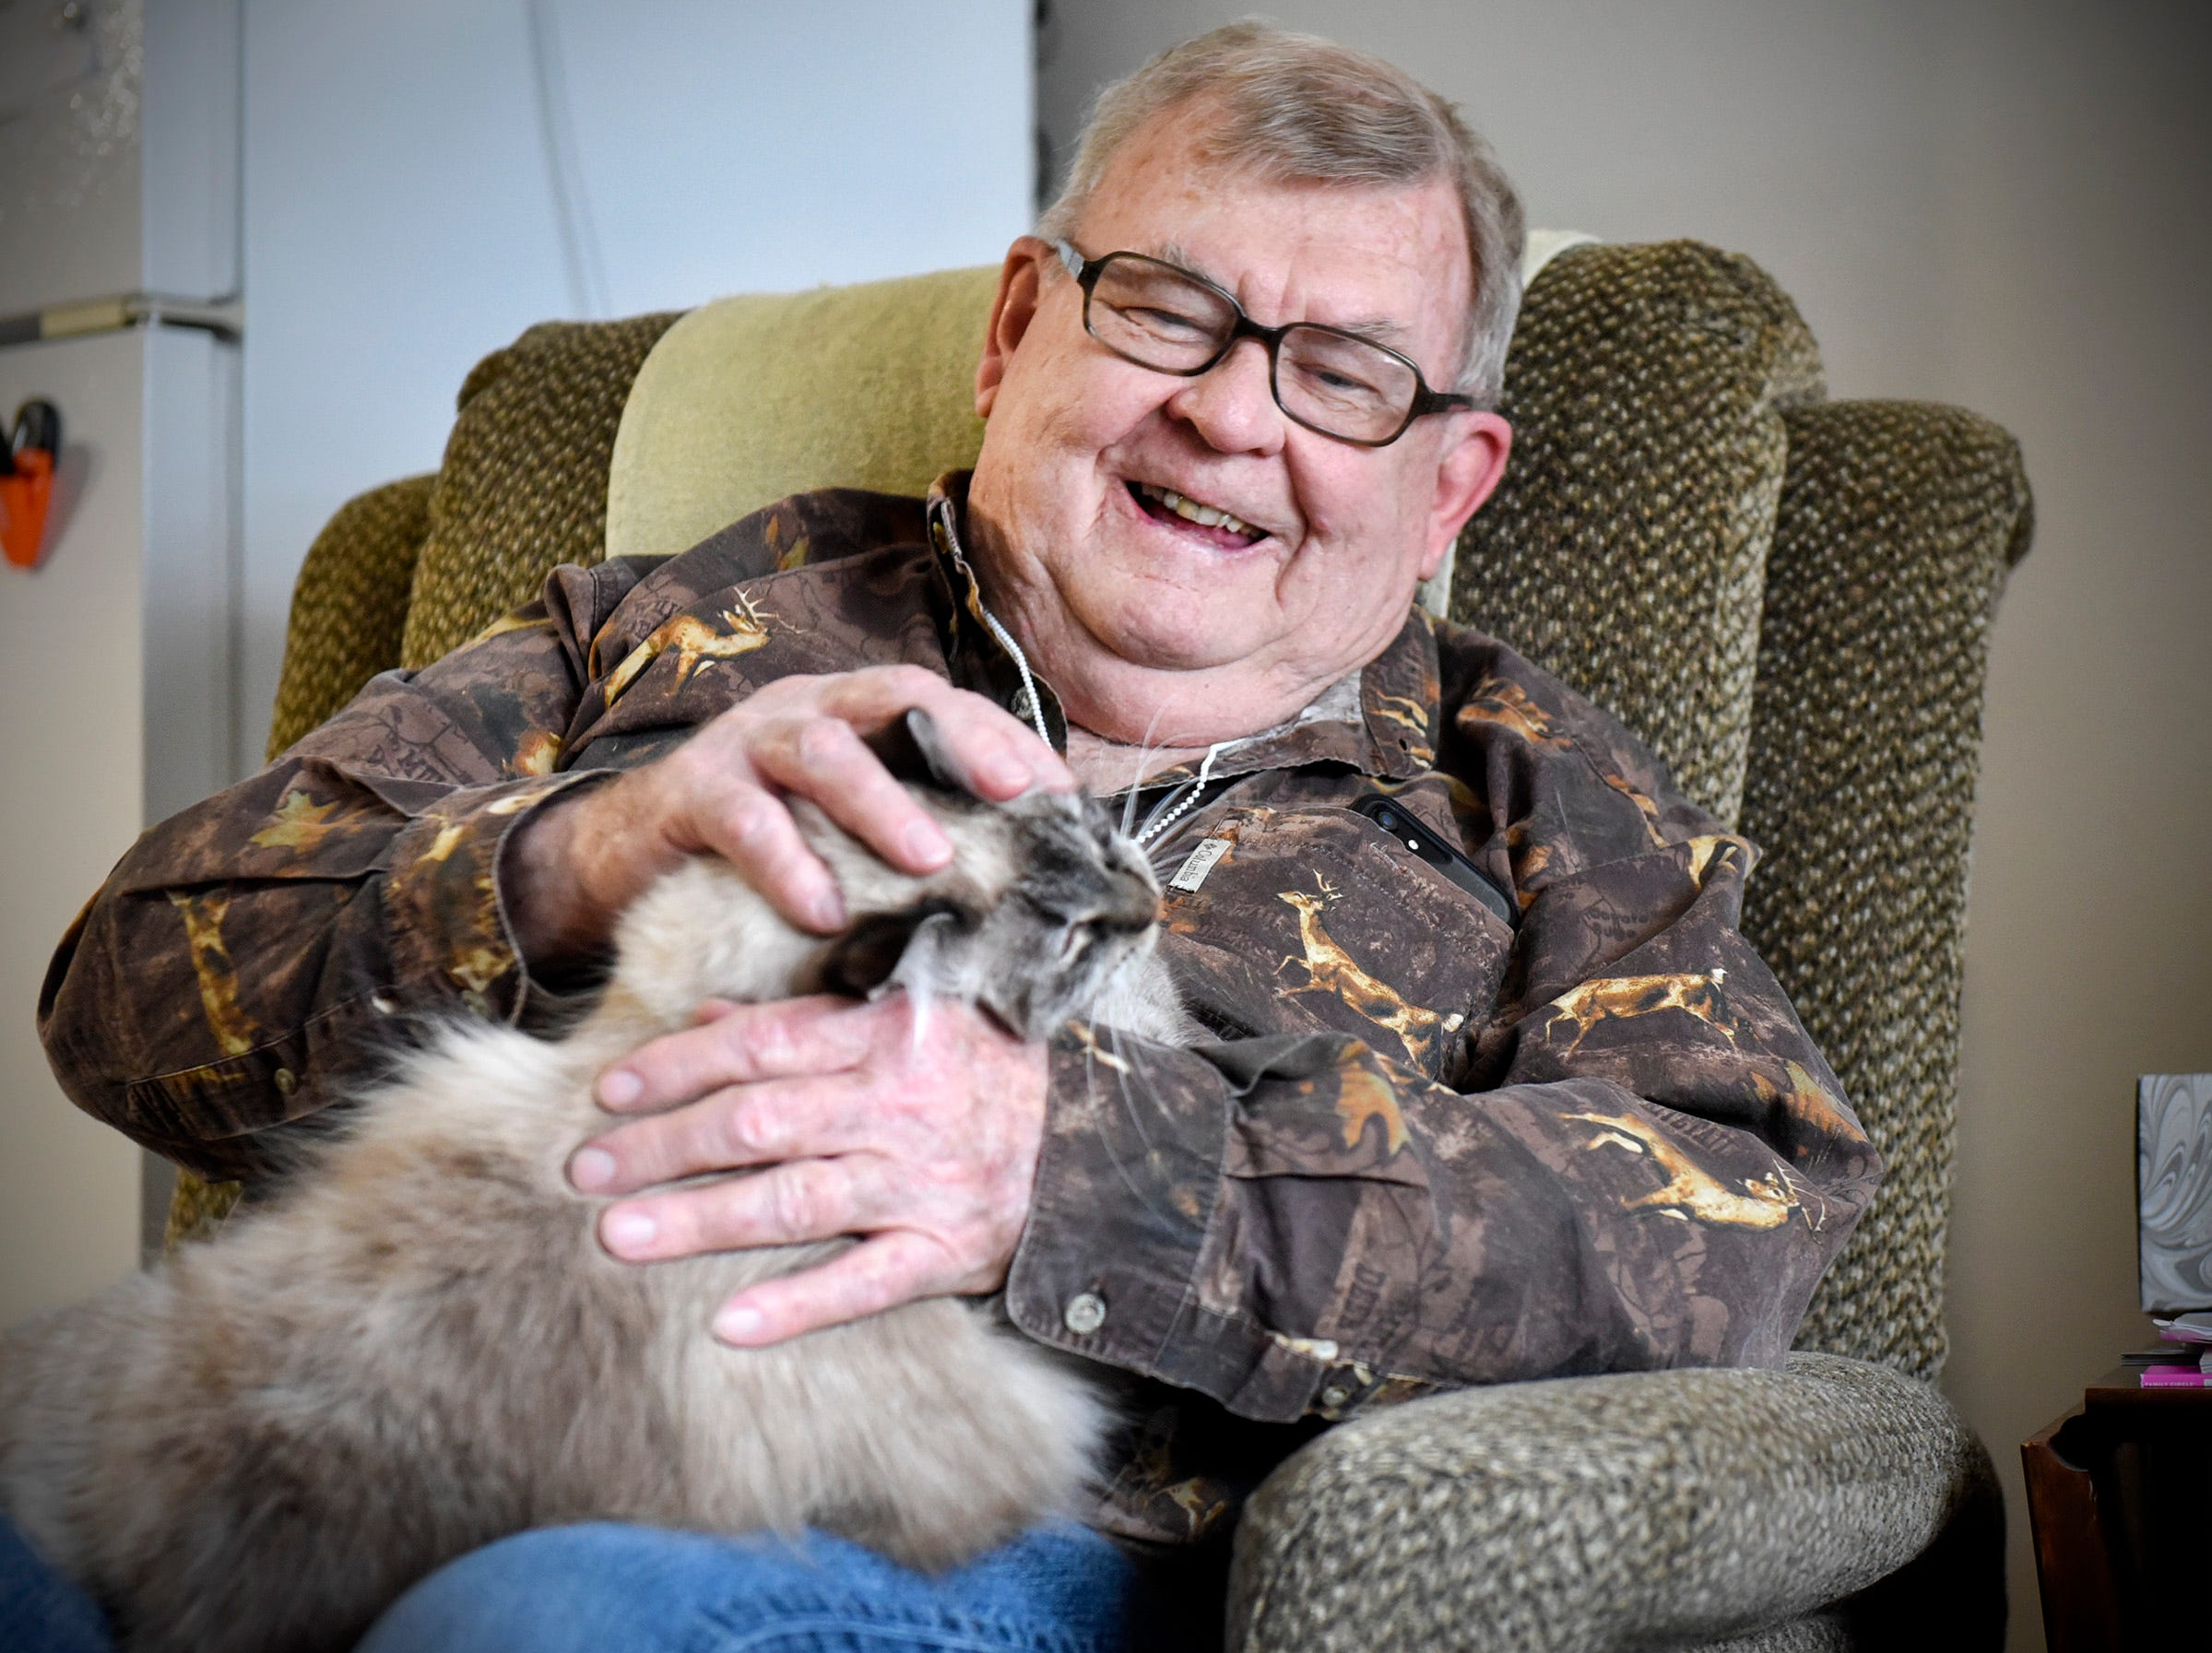 Harold Nelson plays with his cat Lena Wednesday, Dec. 5, at Ridgeview Place Senior Living in Sauk Rapids.